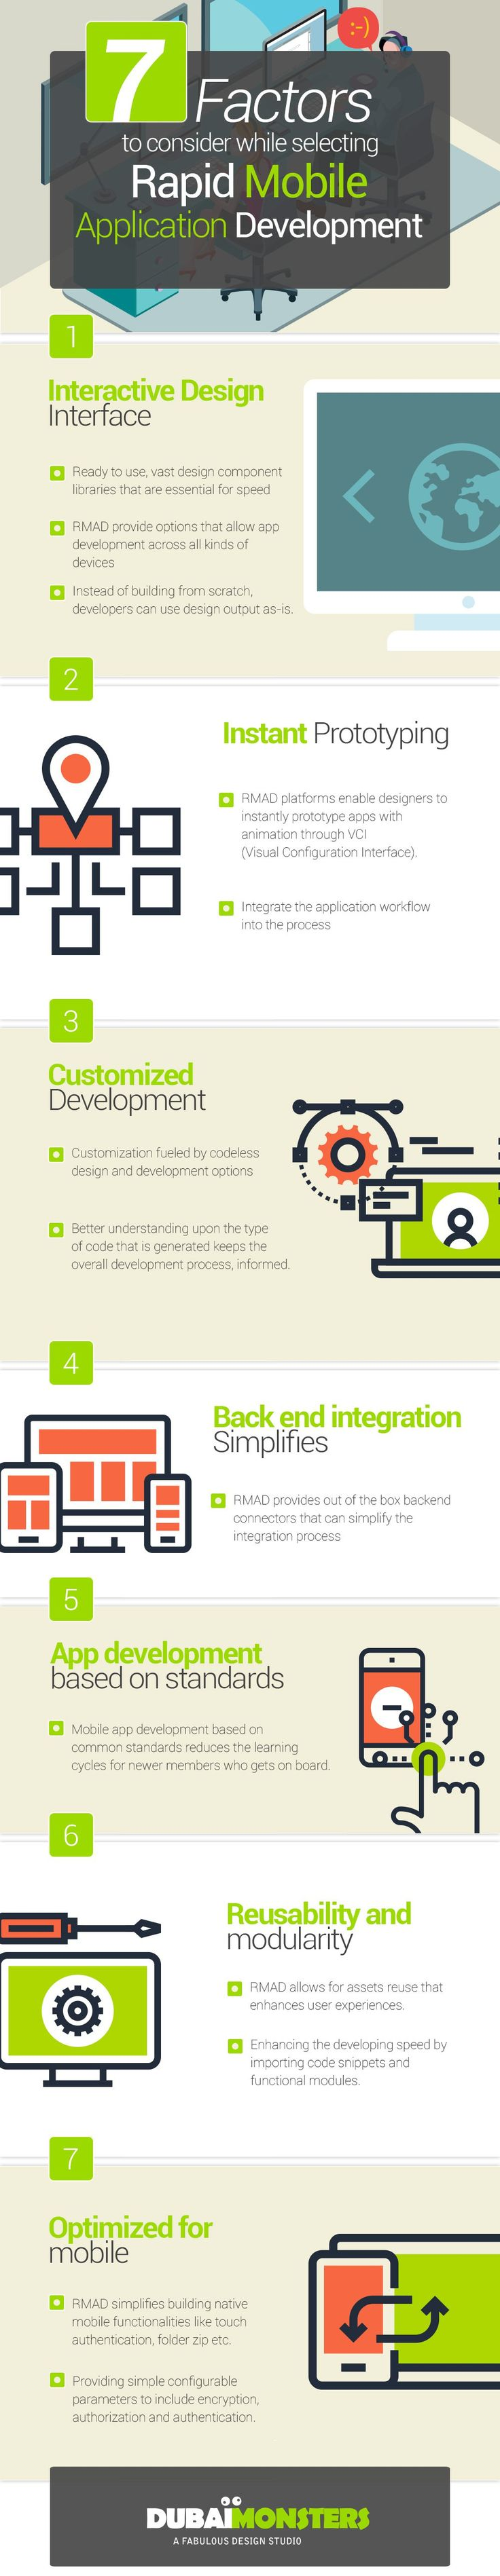 7 Factors to Consider while Selecting Rapid Mobile Application Development #Infographic #Apps #Business